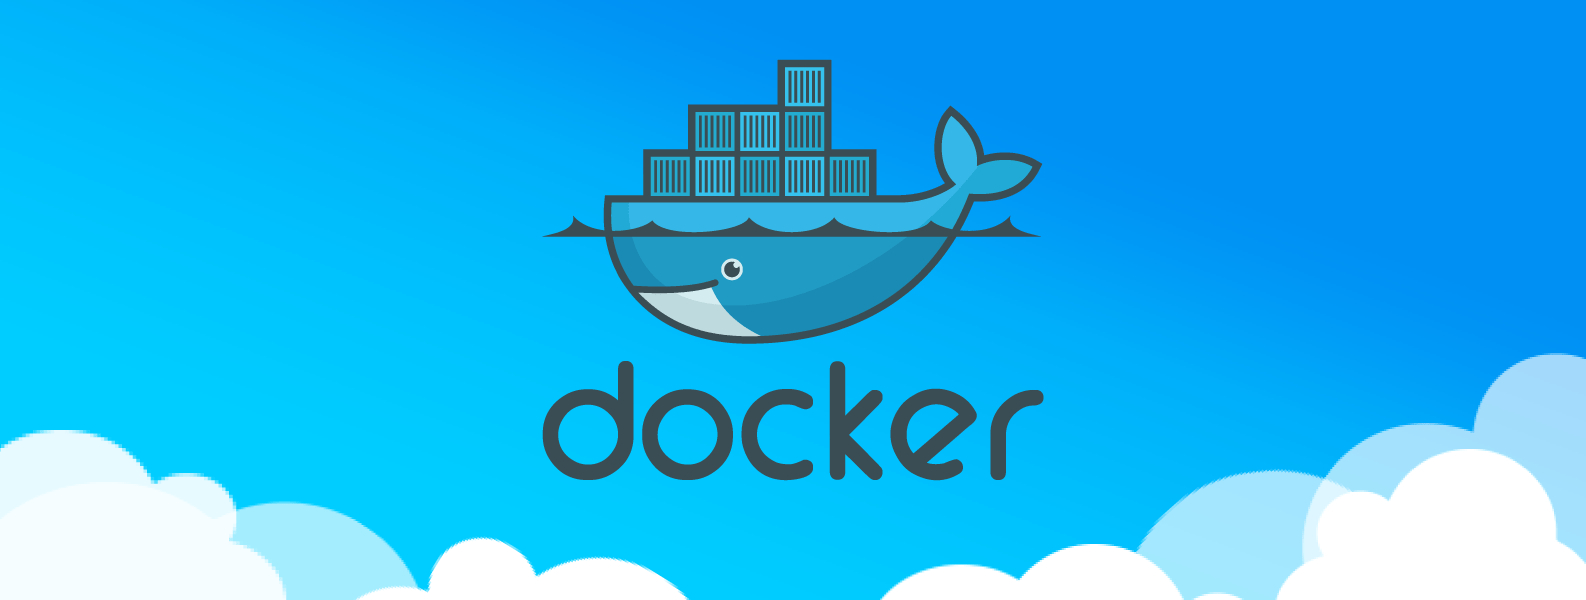 /an-introduction-to-docker-and-how-it-is-important-for-sysadmins-9ai83awo feature image